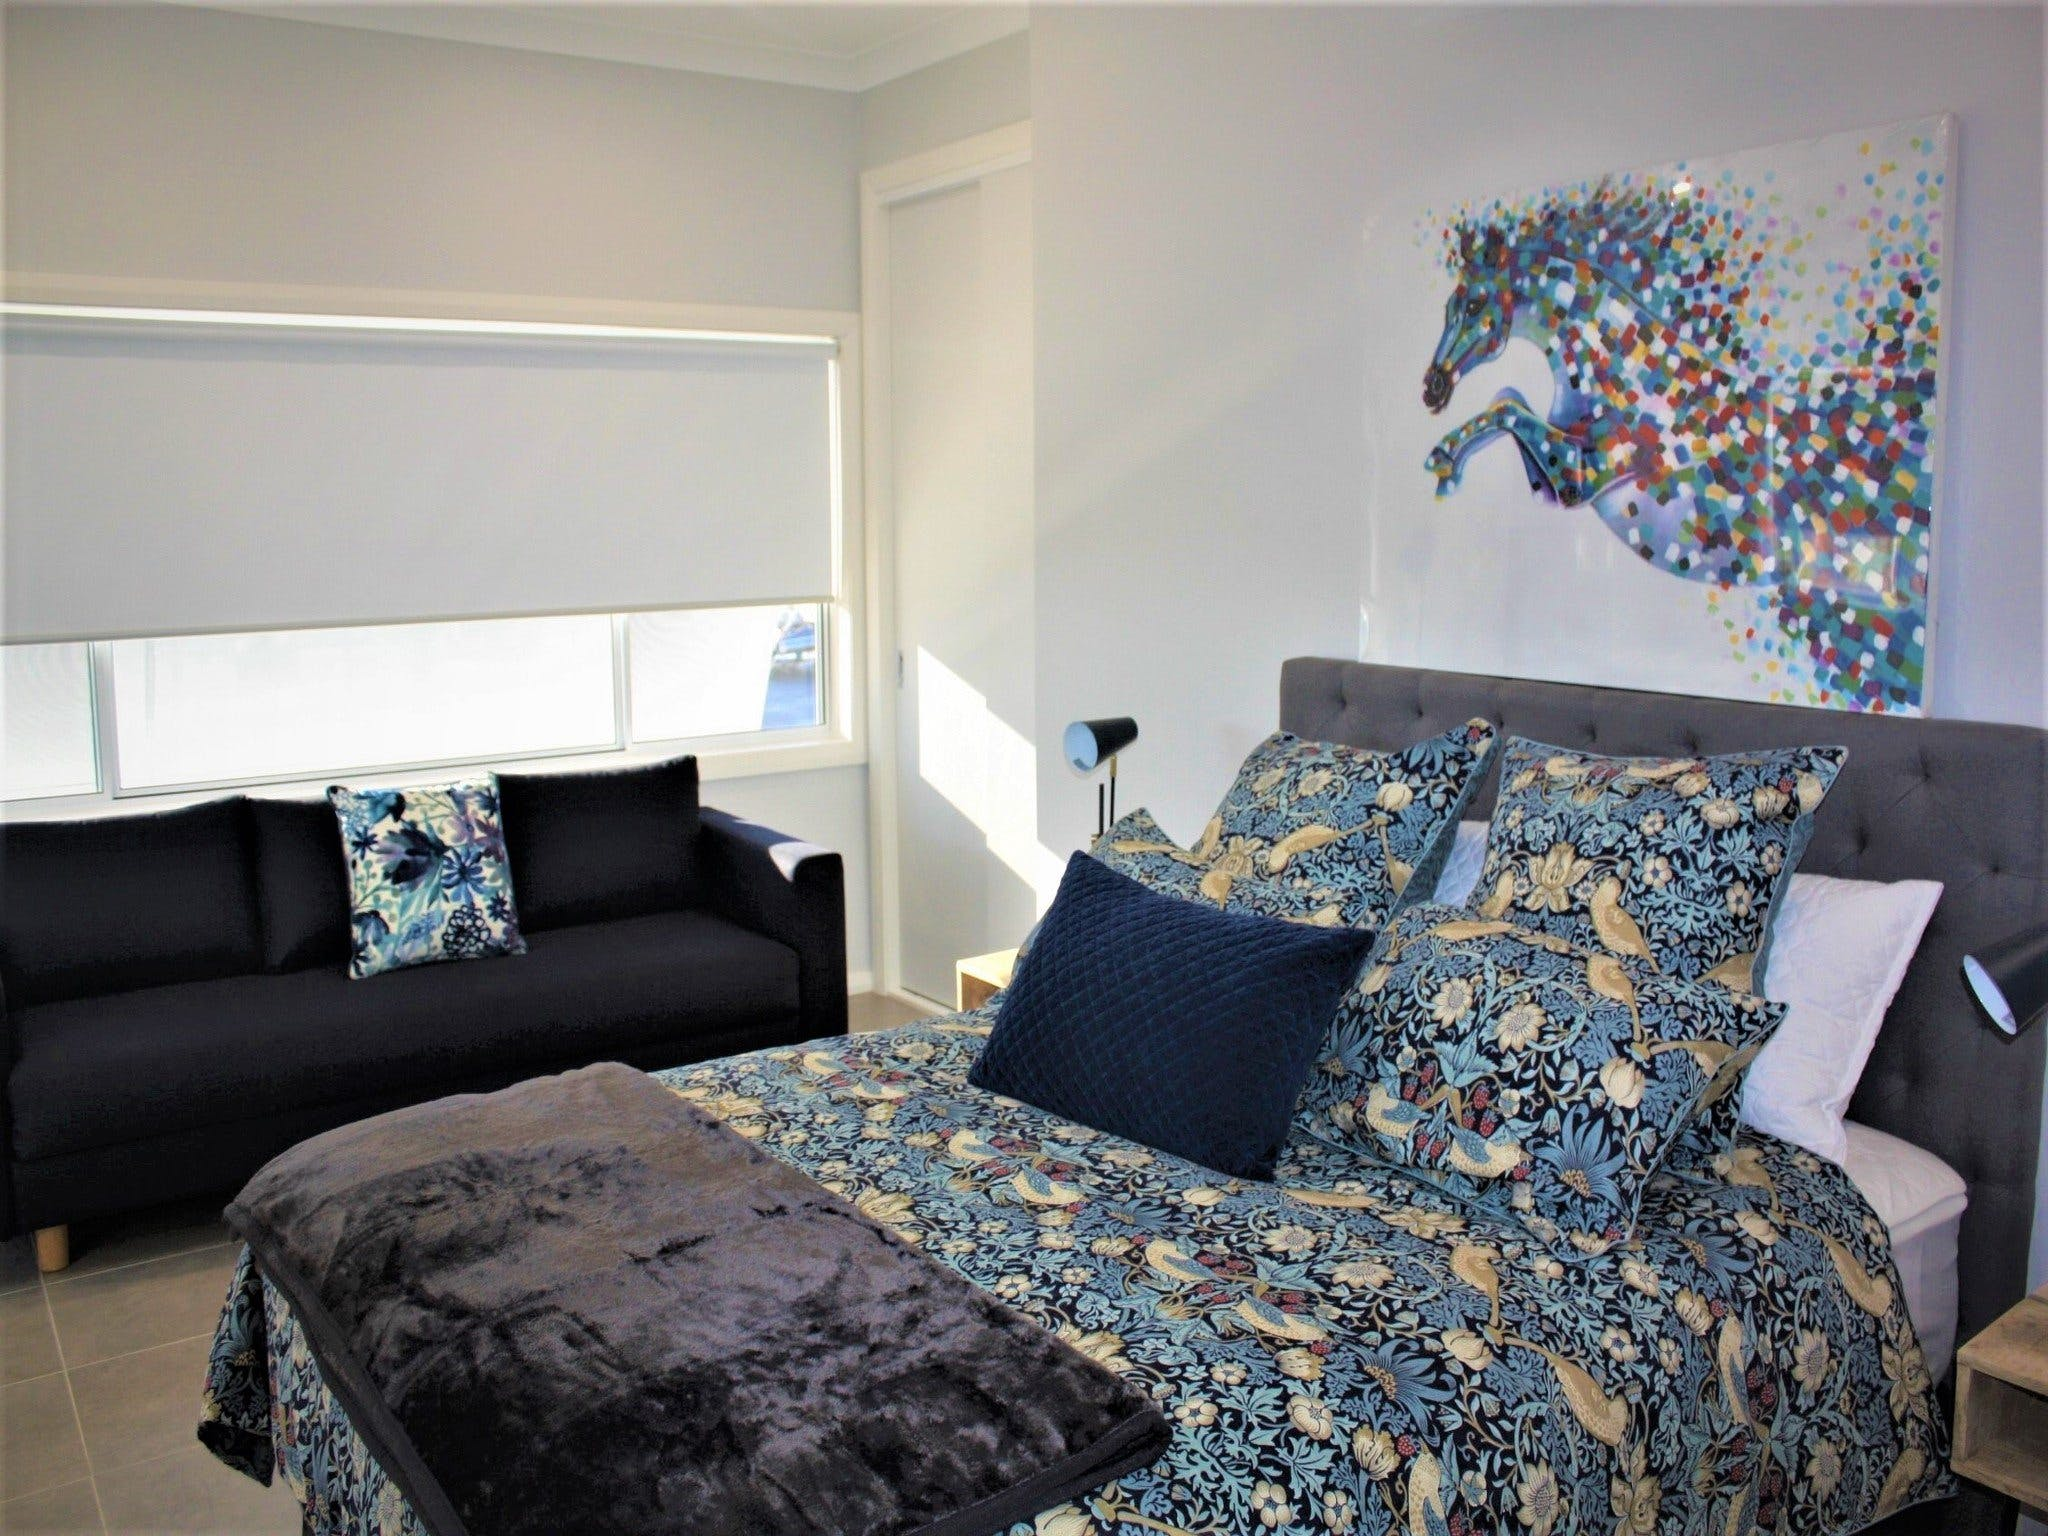 Coolah Shorts - Self Contained Apartments - Accommodation Cairns